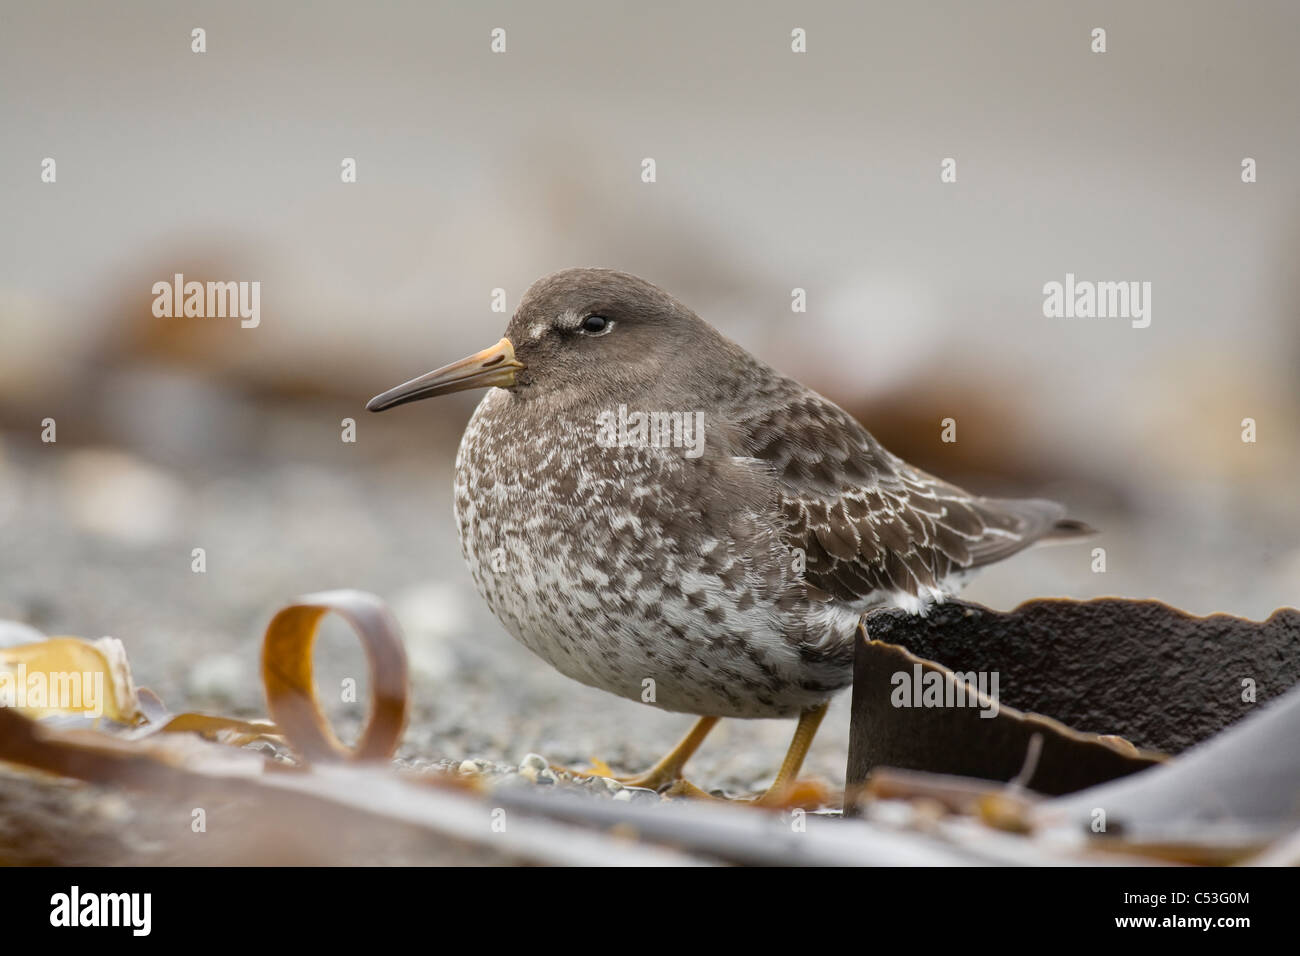 Rock Sandpiper in Winter plumage, Kodiak Island, Southwest Alaska, Winter - Stock Image